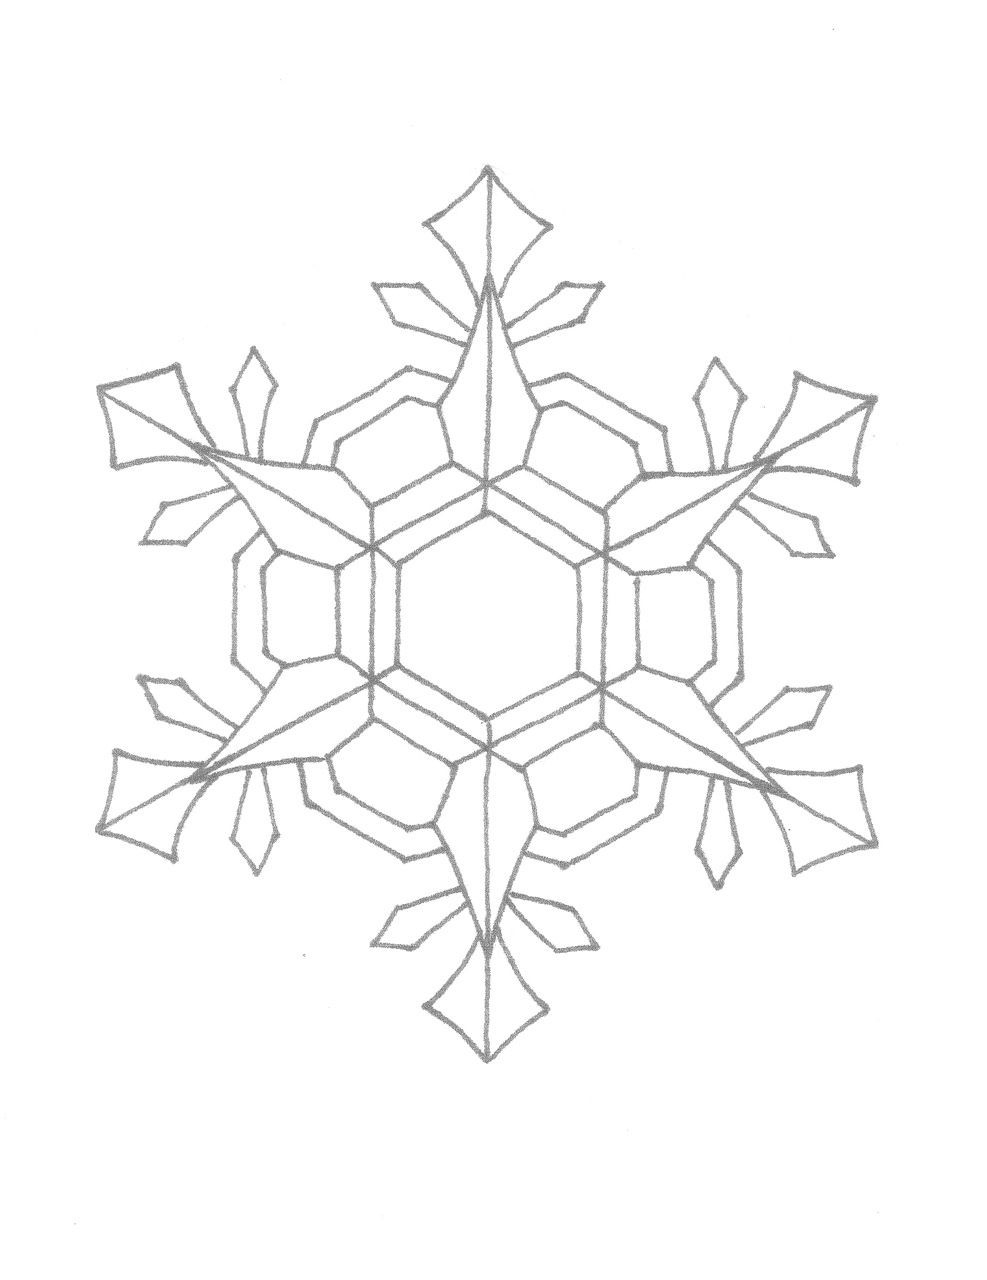 Free Printable Snowflake Coloring Pages 11 Snowflakes Printable - Free Printable Snowflakes